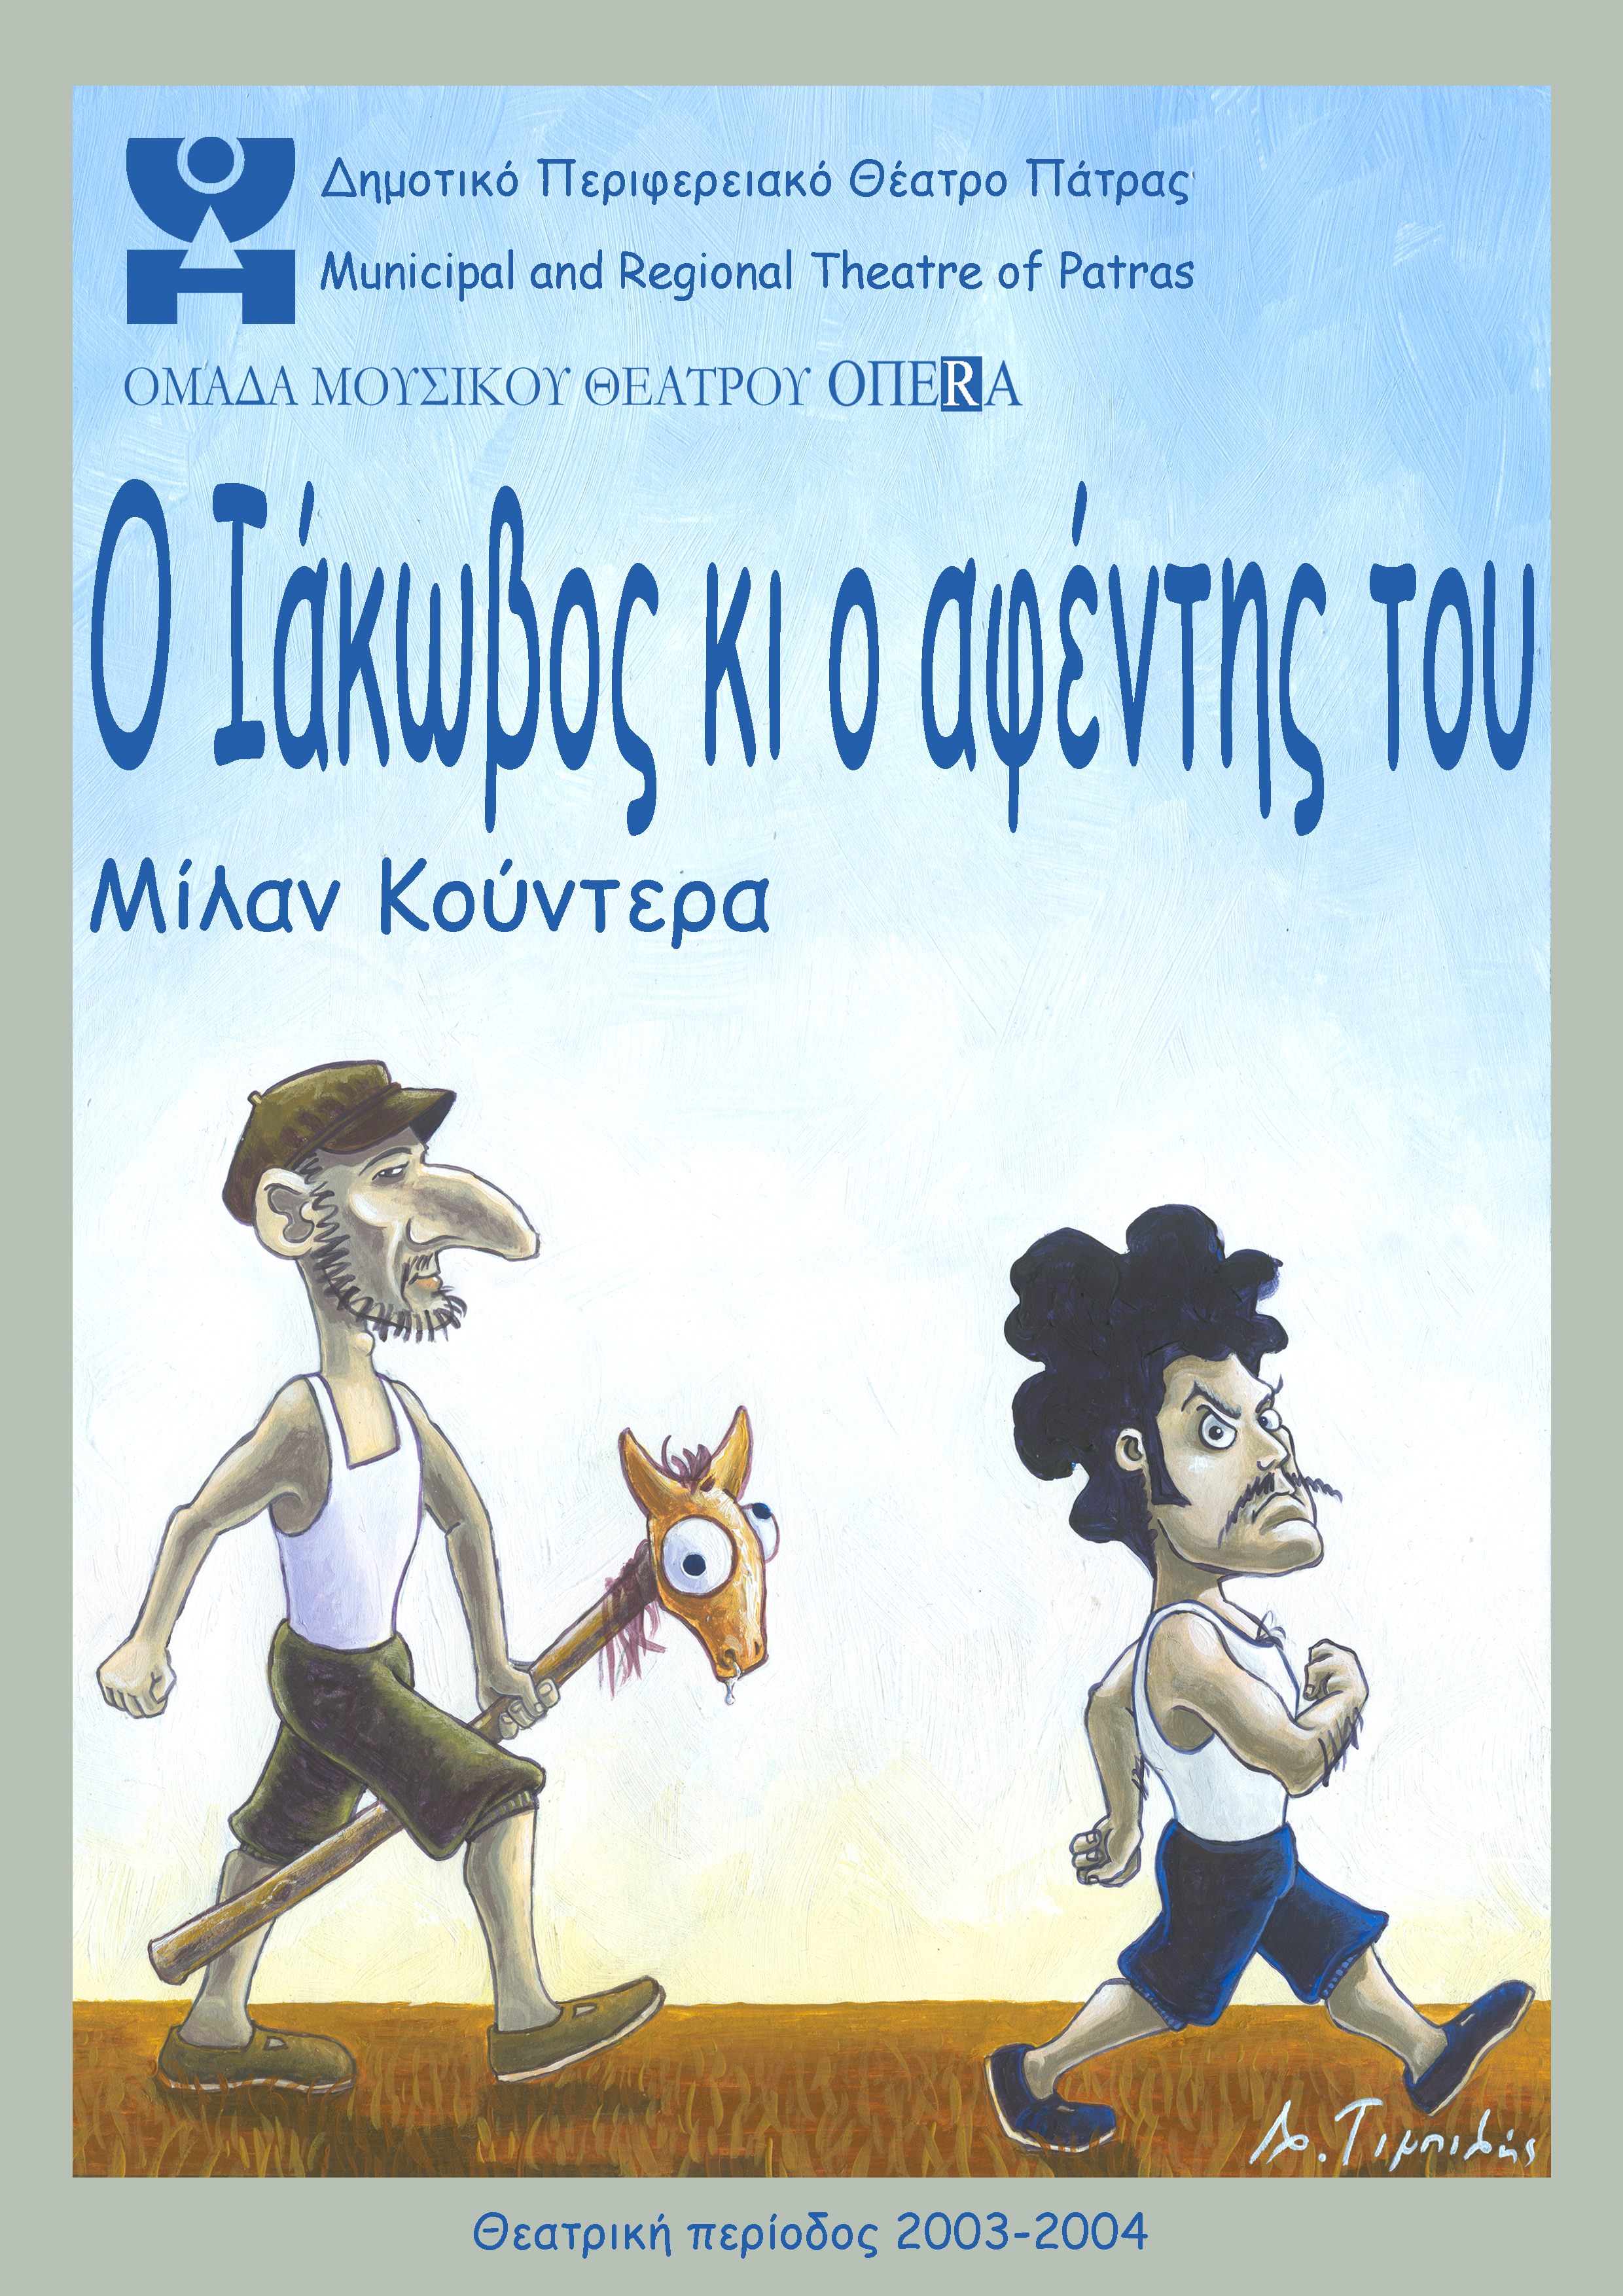 2003 Jacques and his Master by Milan Kundera Program Front Cover.jpg